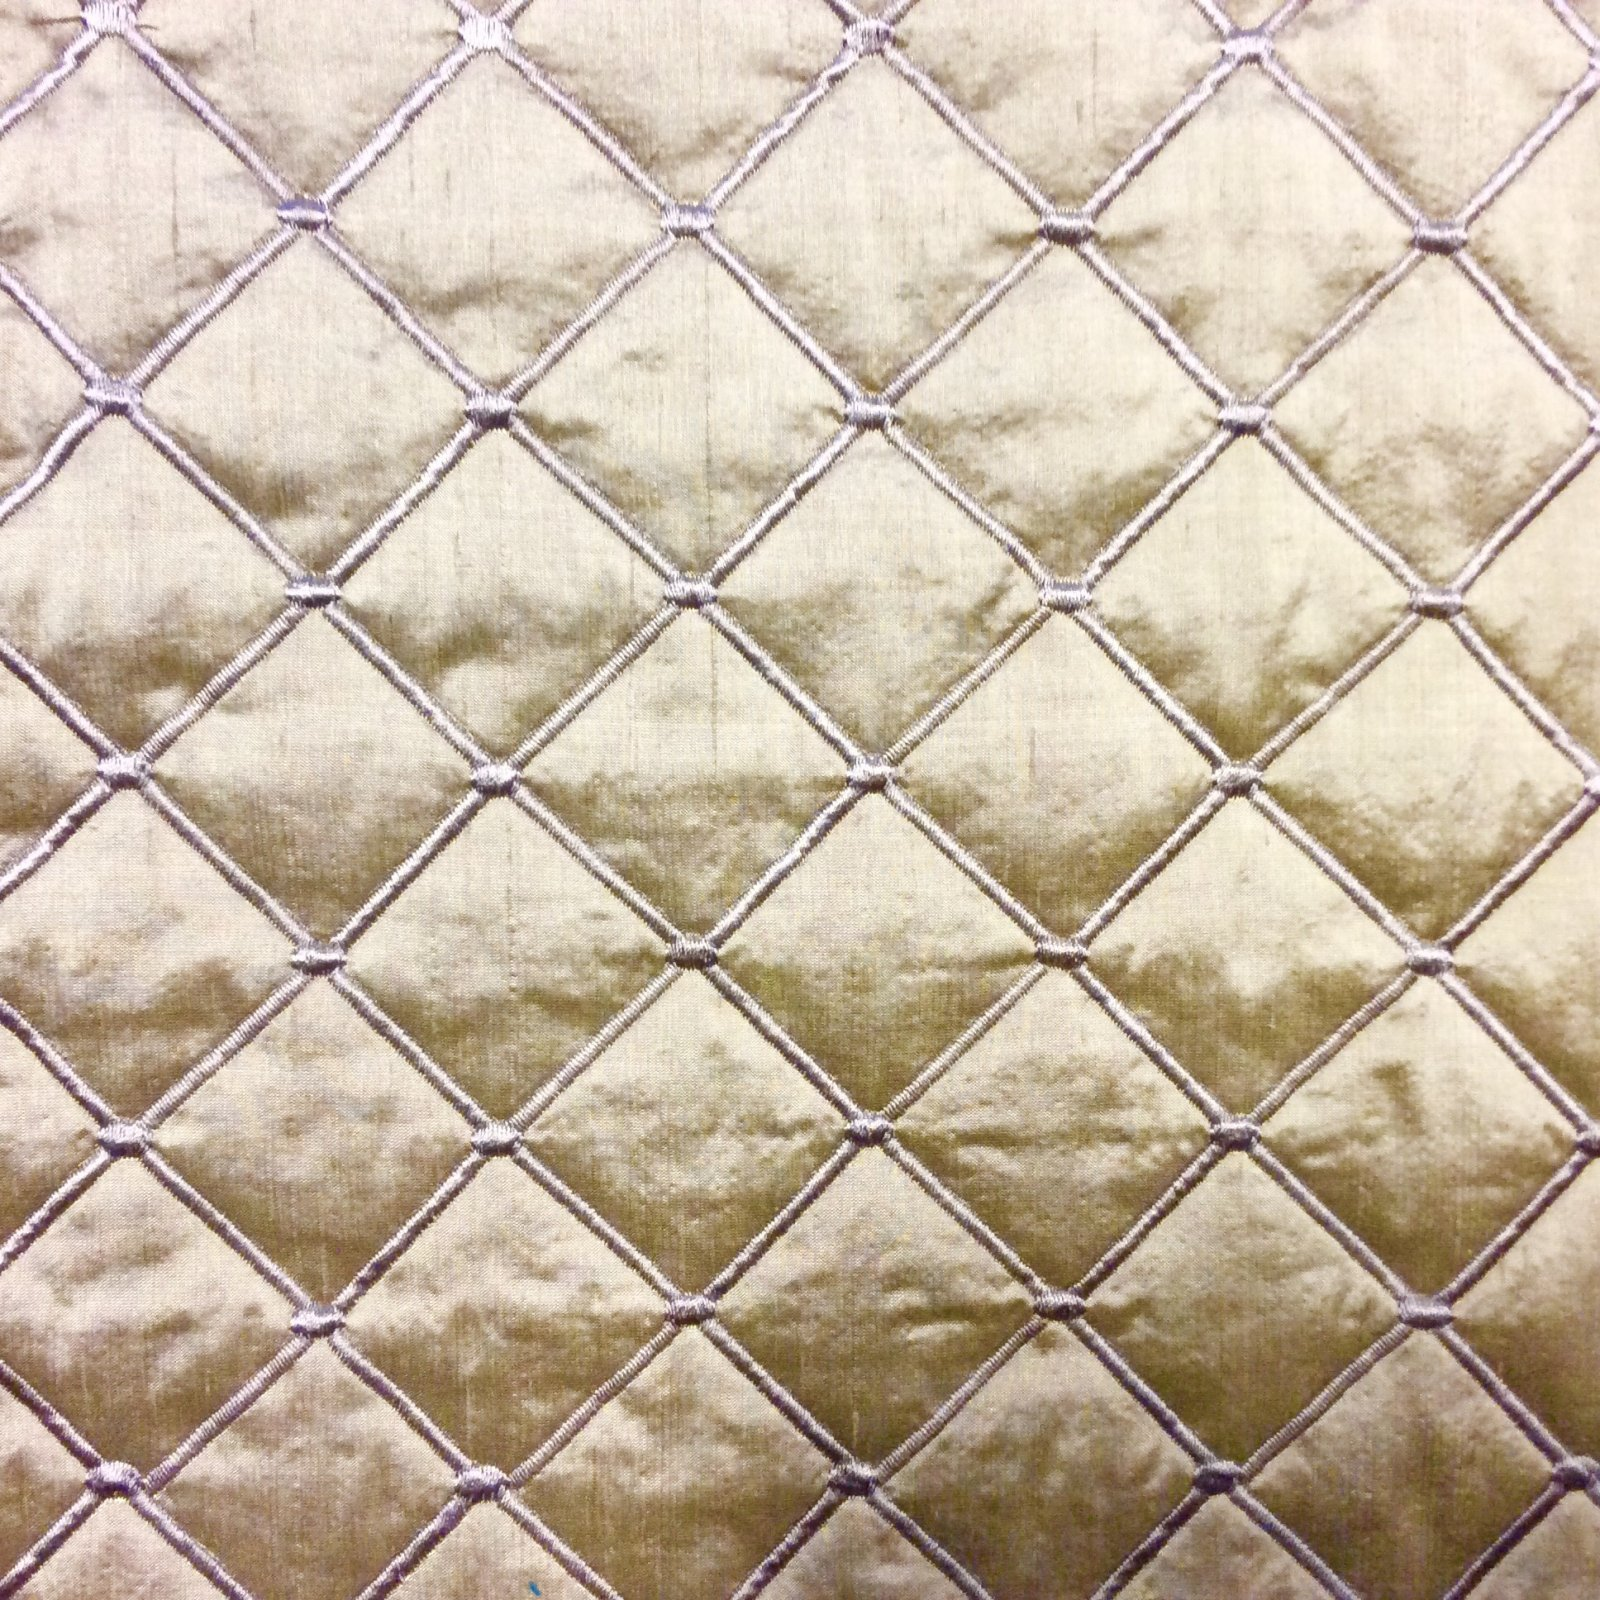 Silk Dupioni Taupe Quilted and Embroidered High End Luxury Home Decor Upholstery Bedding Fabric NL018